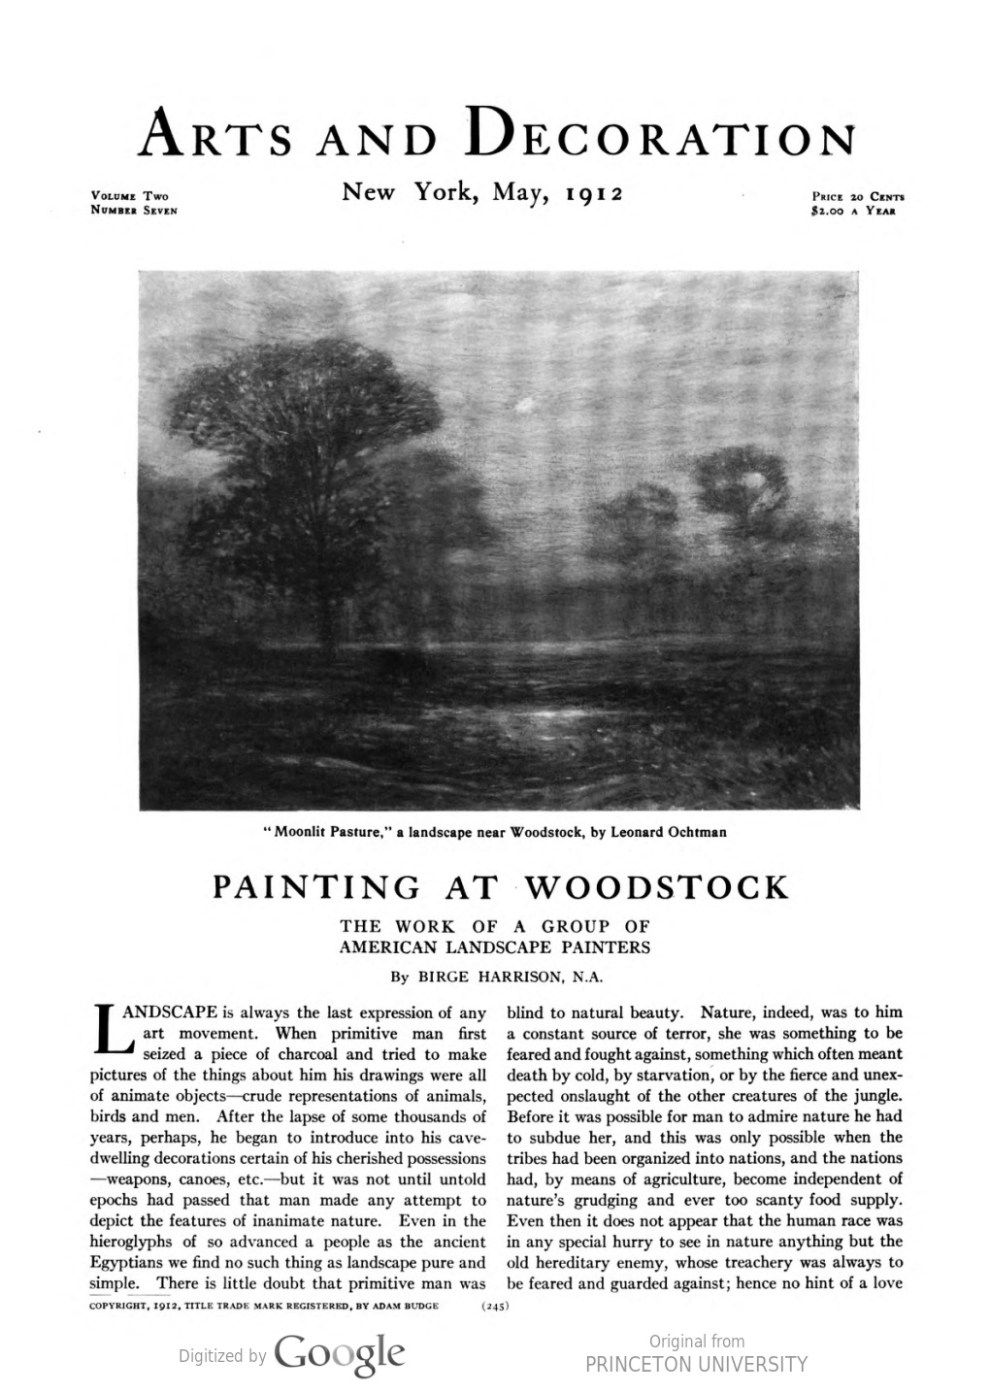 "Arts and Decoration, New York, NY, ""Exhibitions at the Galleries"", May, 1912, Volume 2, Number 7, page 267, not illustrated"